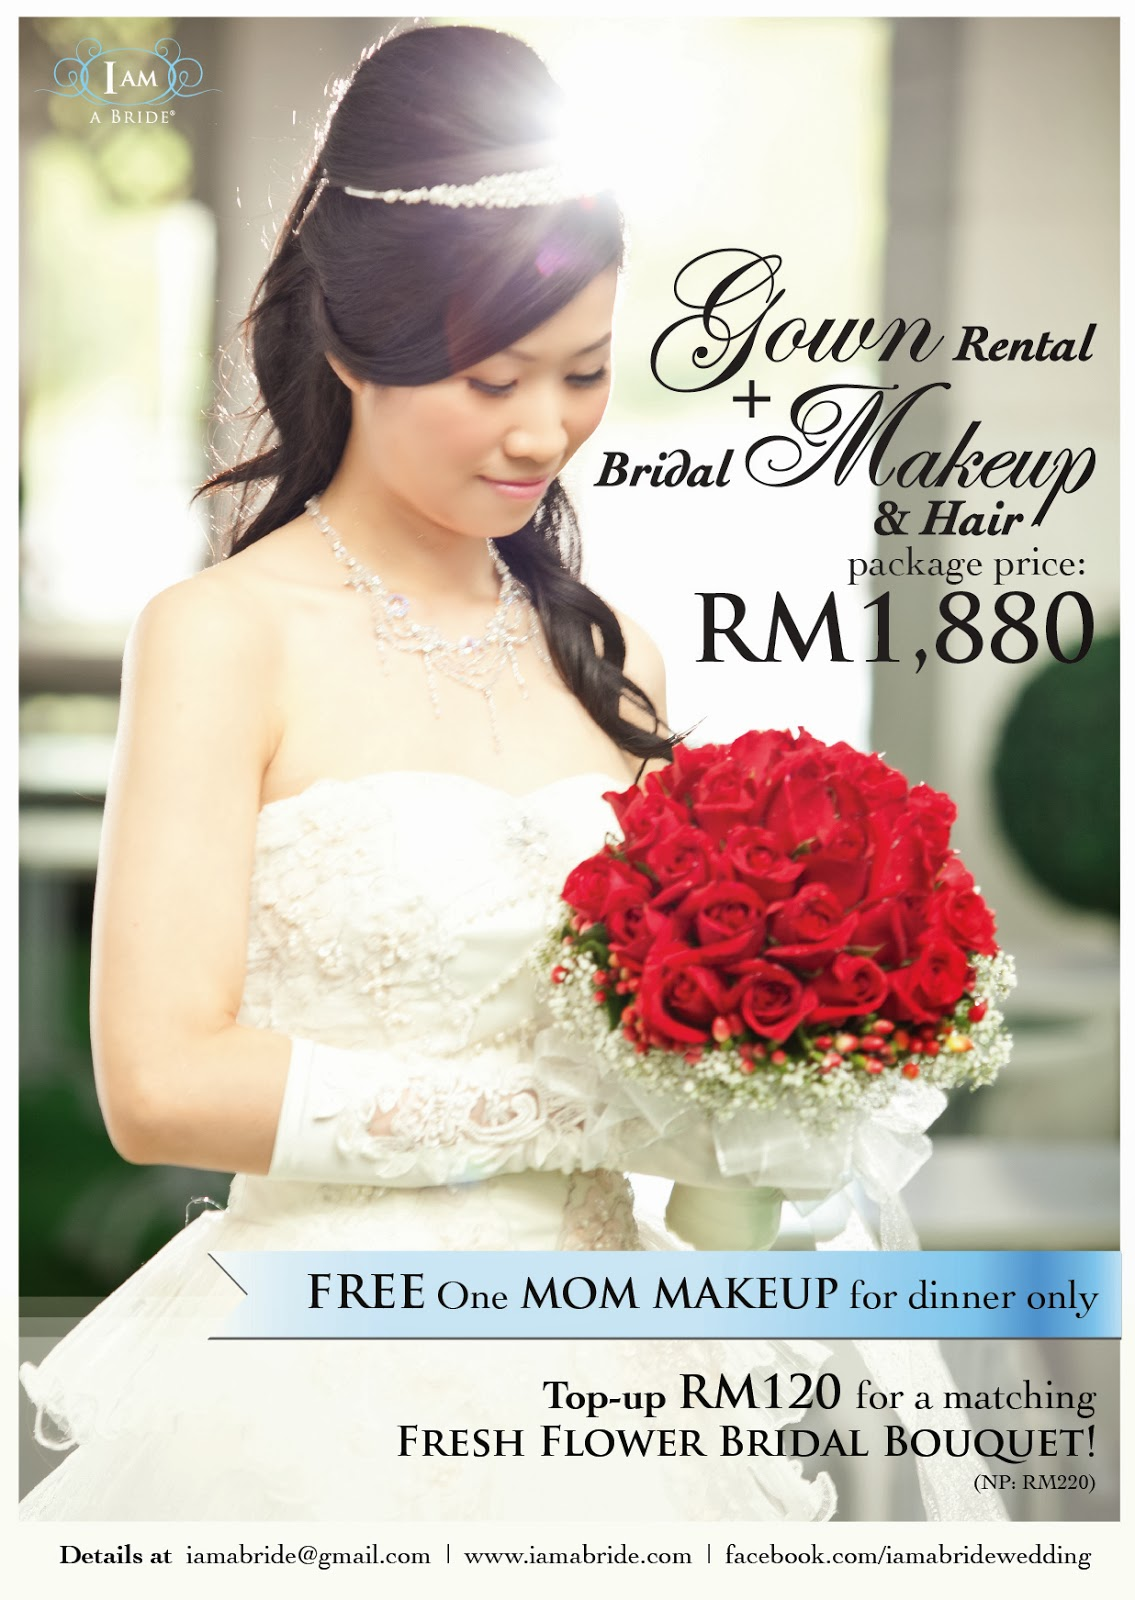 PROMOTION Gown Rental And Bridal Makeup Hair 2013 2014